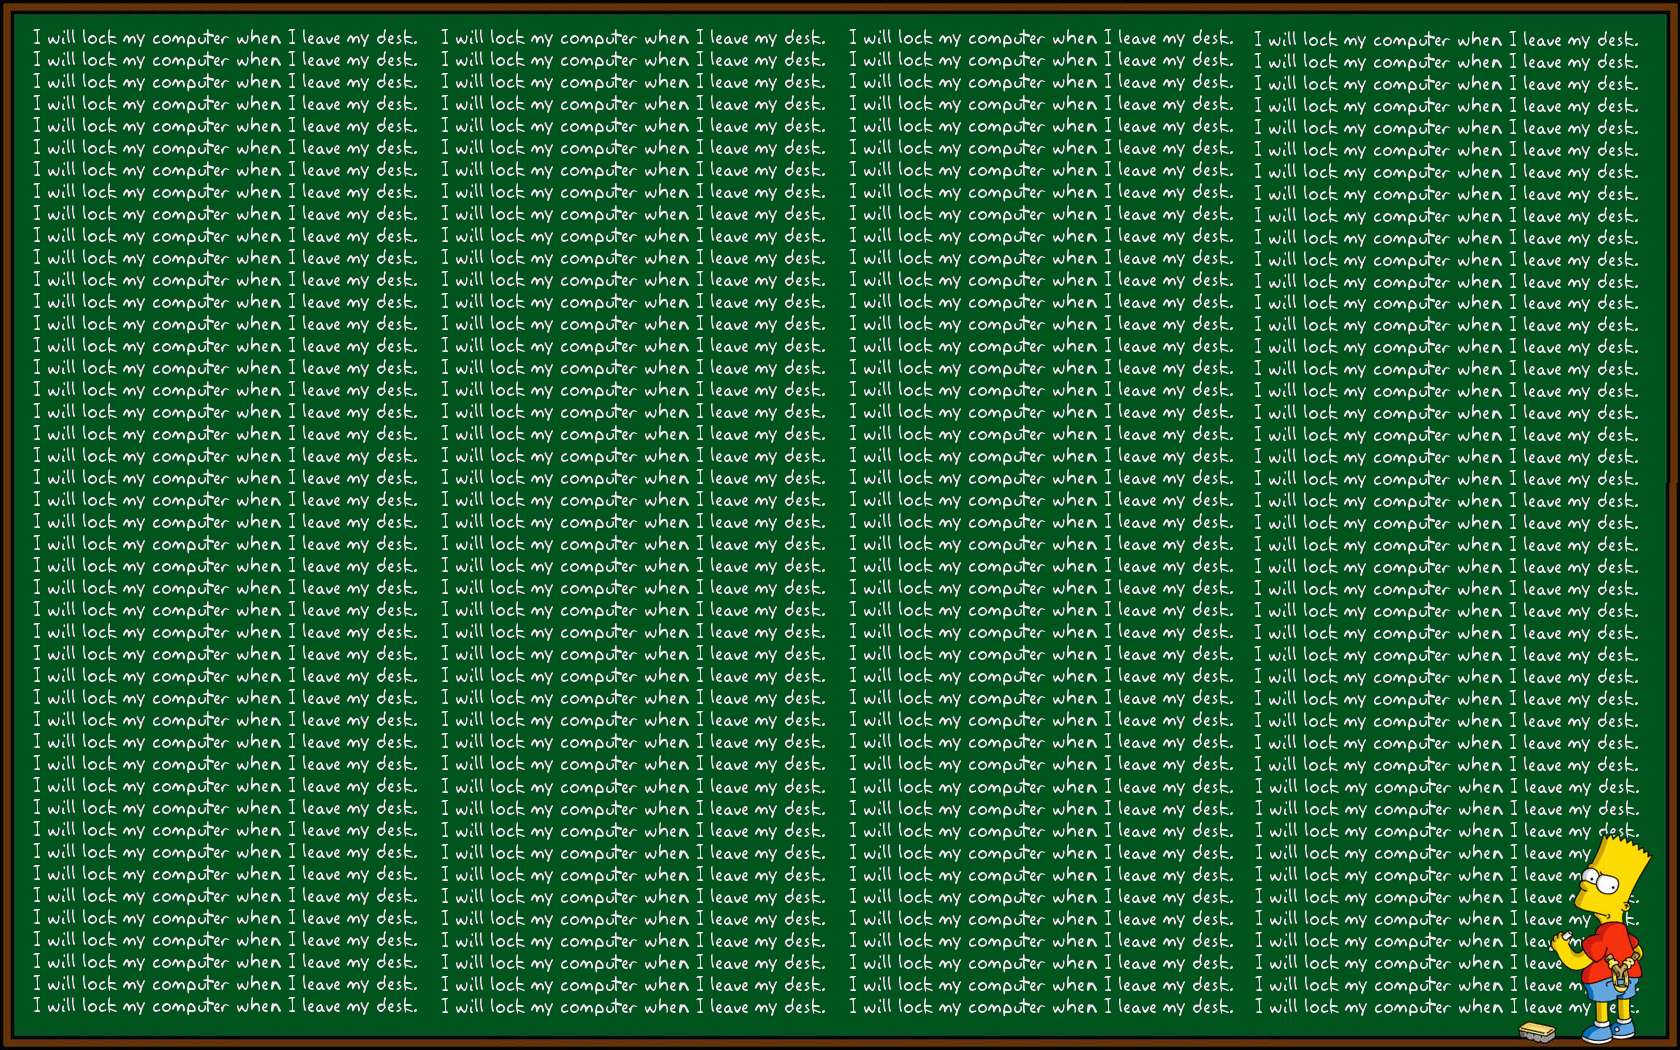 /uploads/2013/02/I-will-lock-my-computer-when-I-leave-my-desk.png